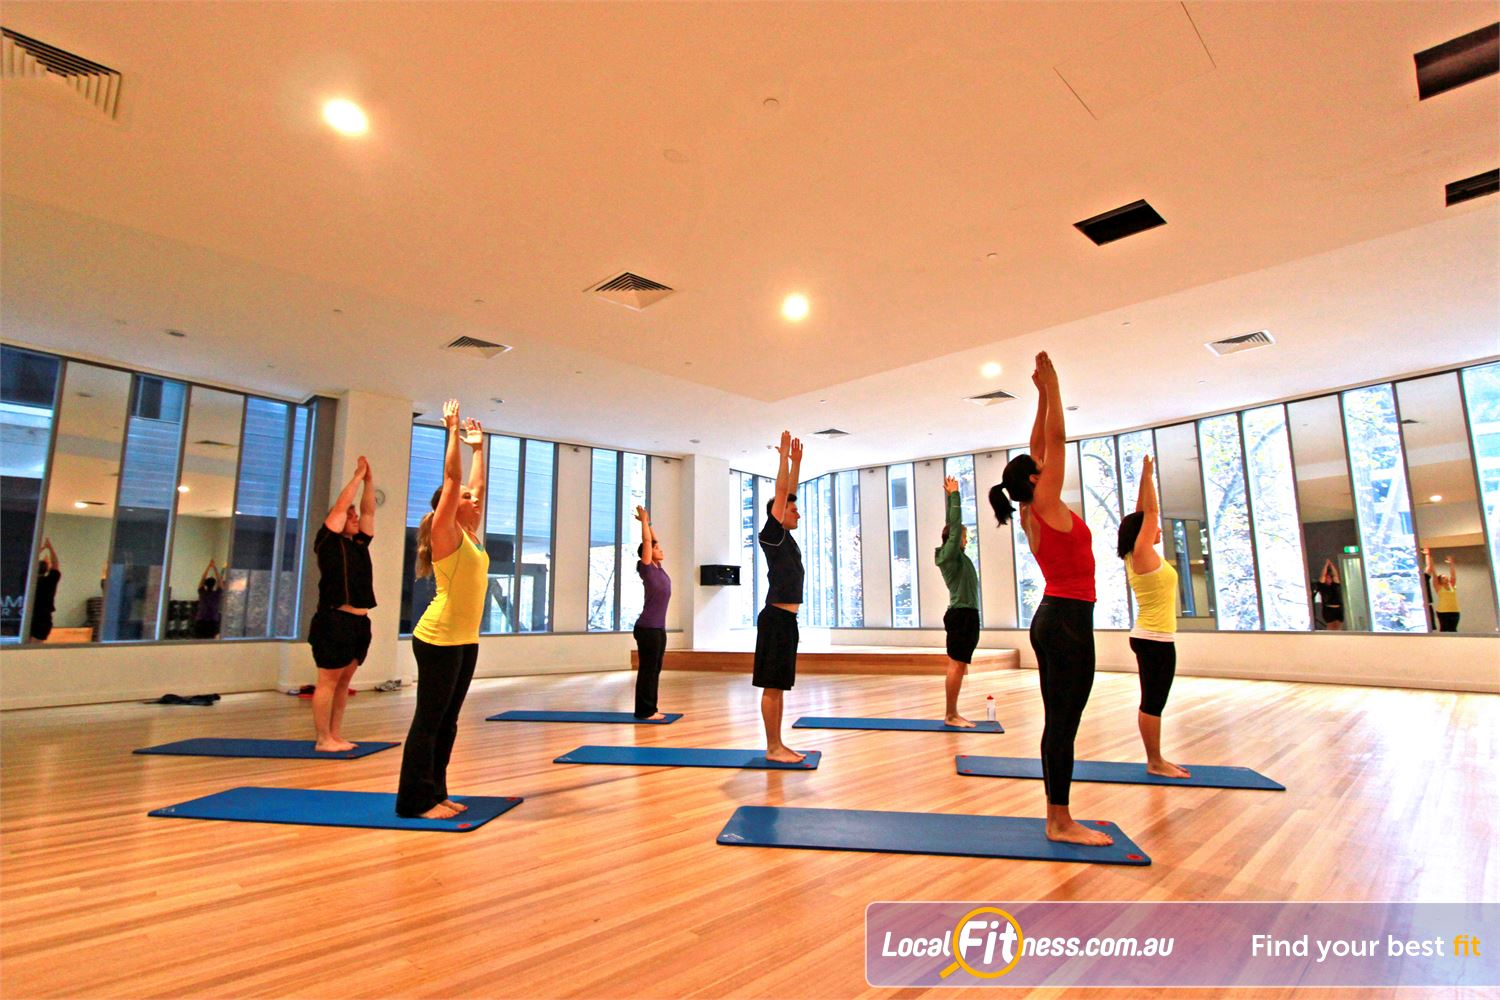 South Pacific Health Clubs Melbourne Enjoy popular Melbourne Yoga and Pilates classes.